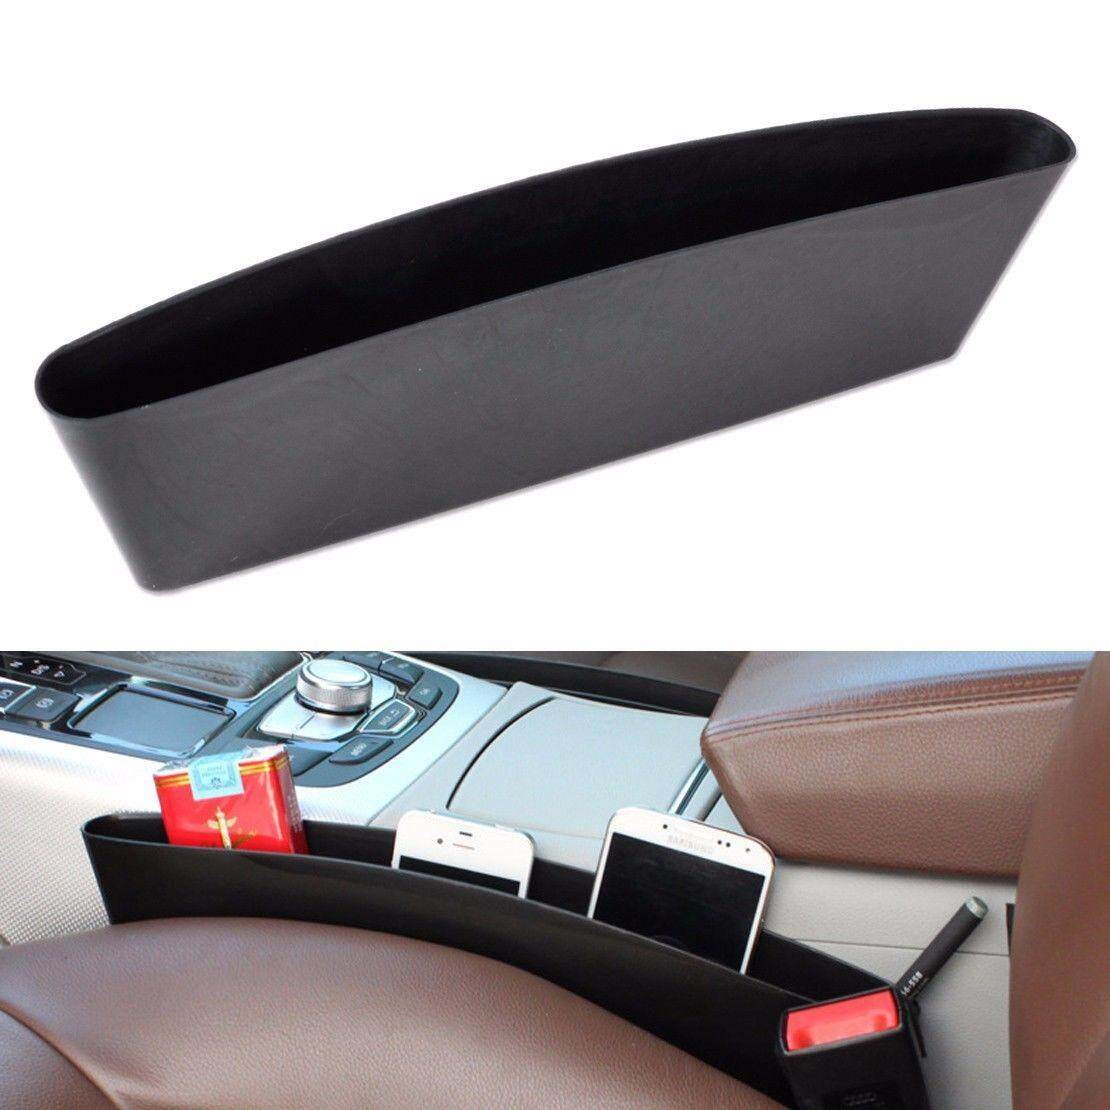 Arche Car Seat Pocket Bag Storage Catch Caddy Organizer Seat Sider Gap Filler Pp Stowing Tidying By Arche Tech.